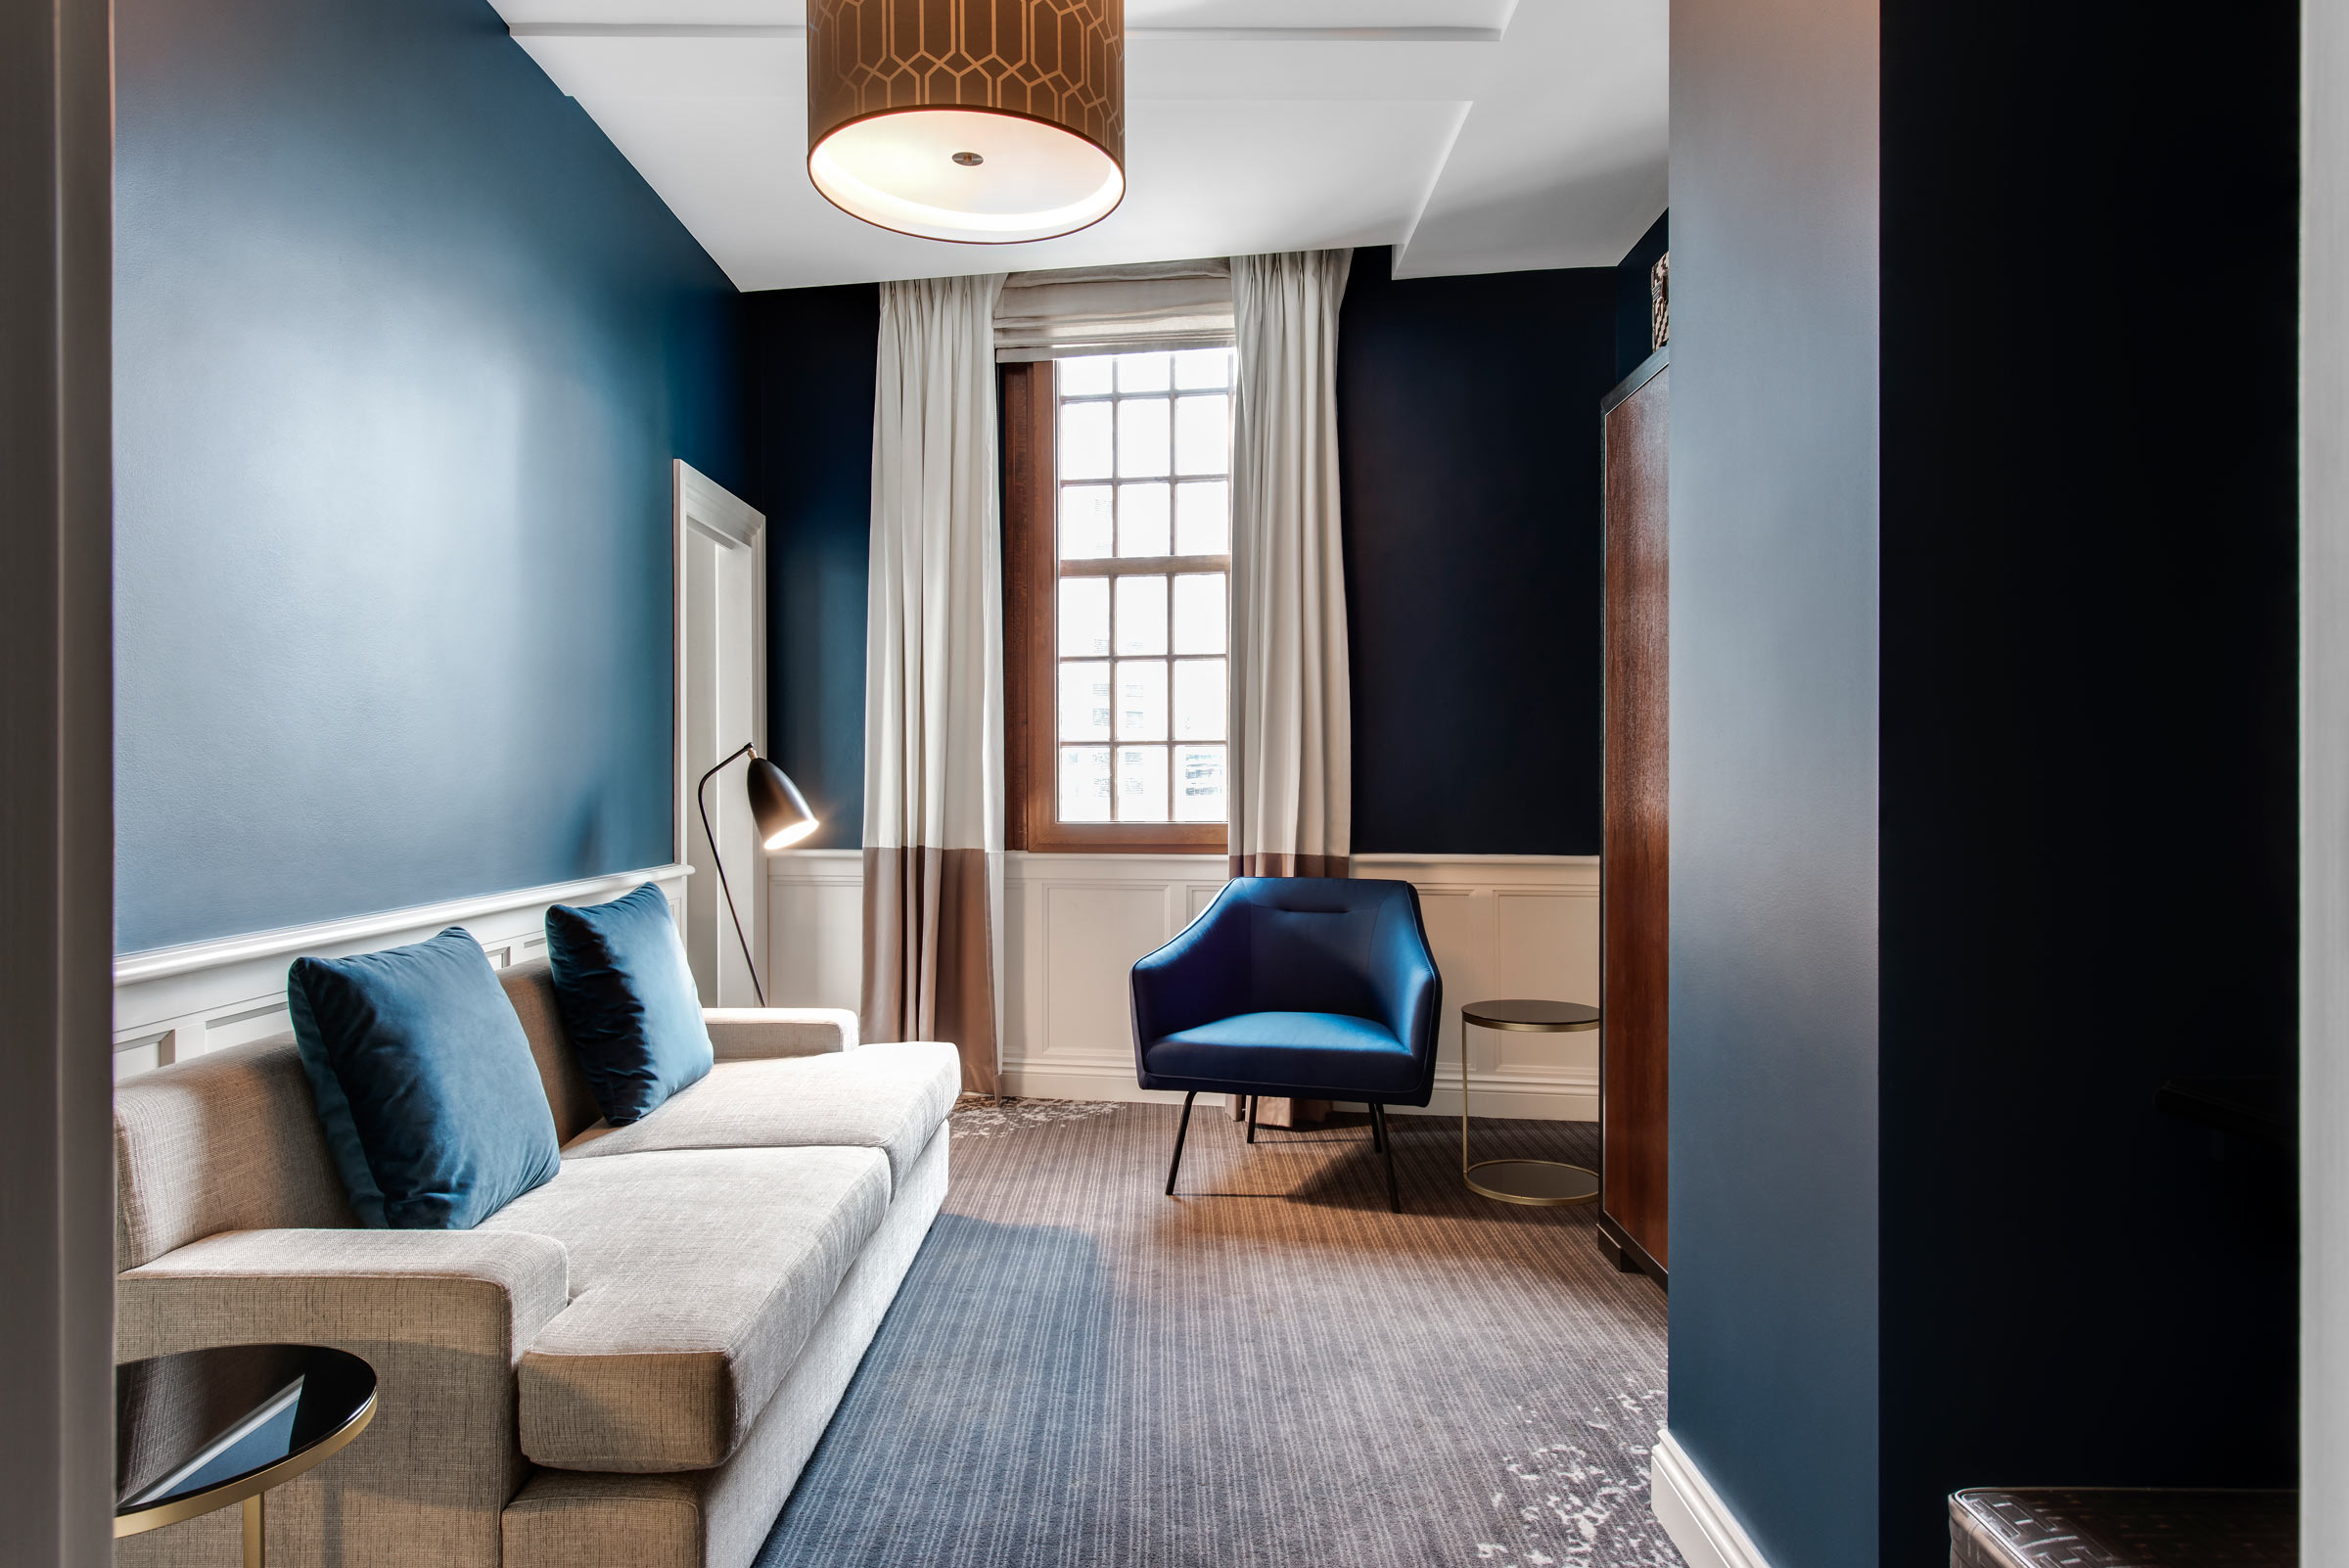 Ovolo-Inchcolm-Large-Suite-1.jpg